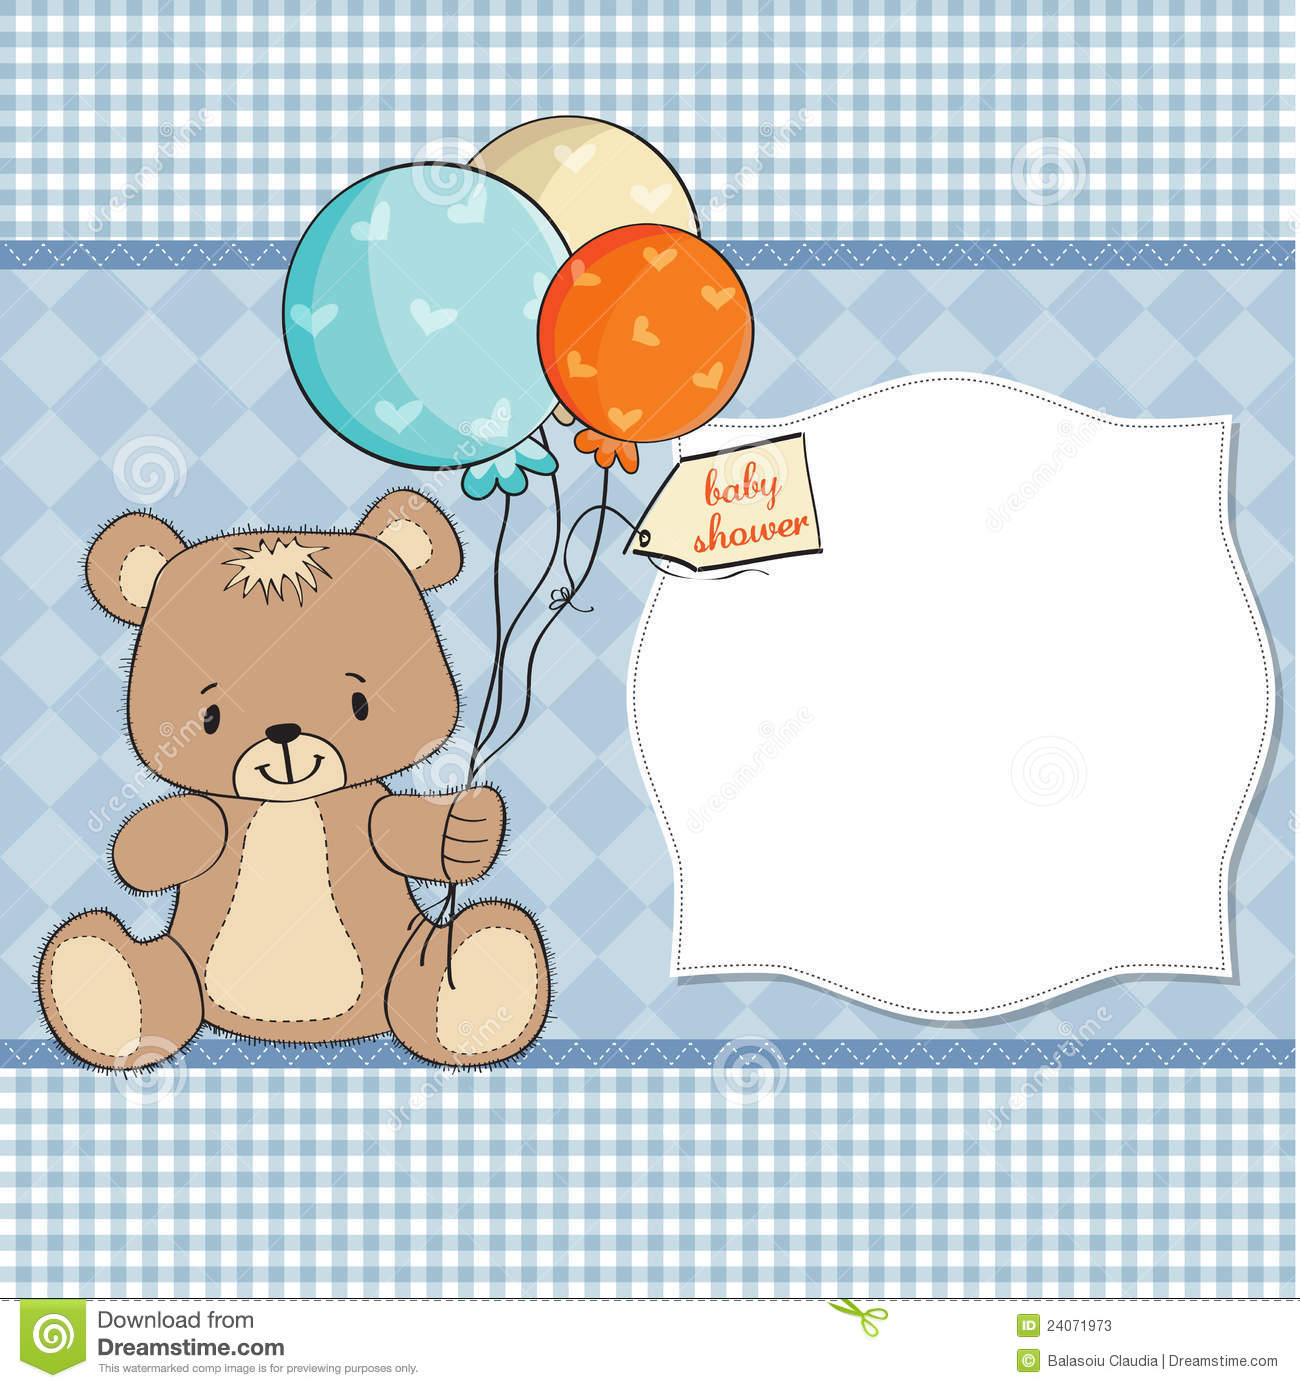 brunito shower card baby - photo #33